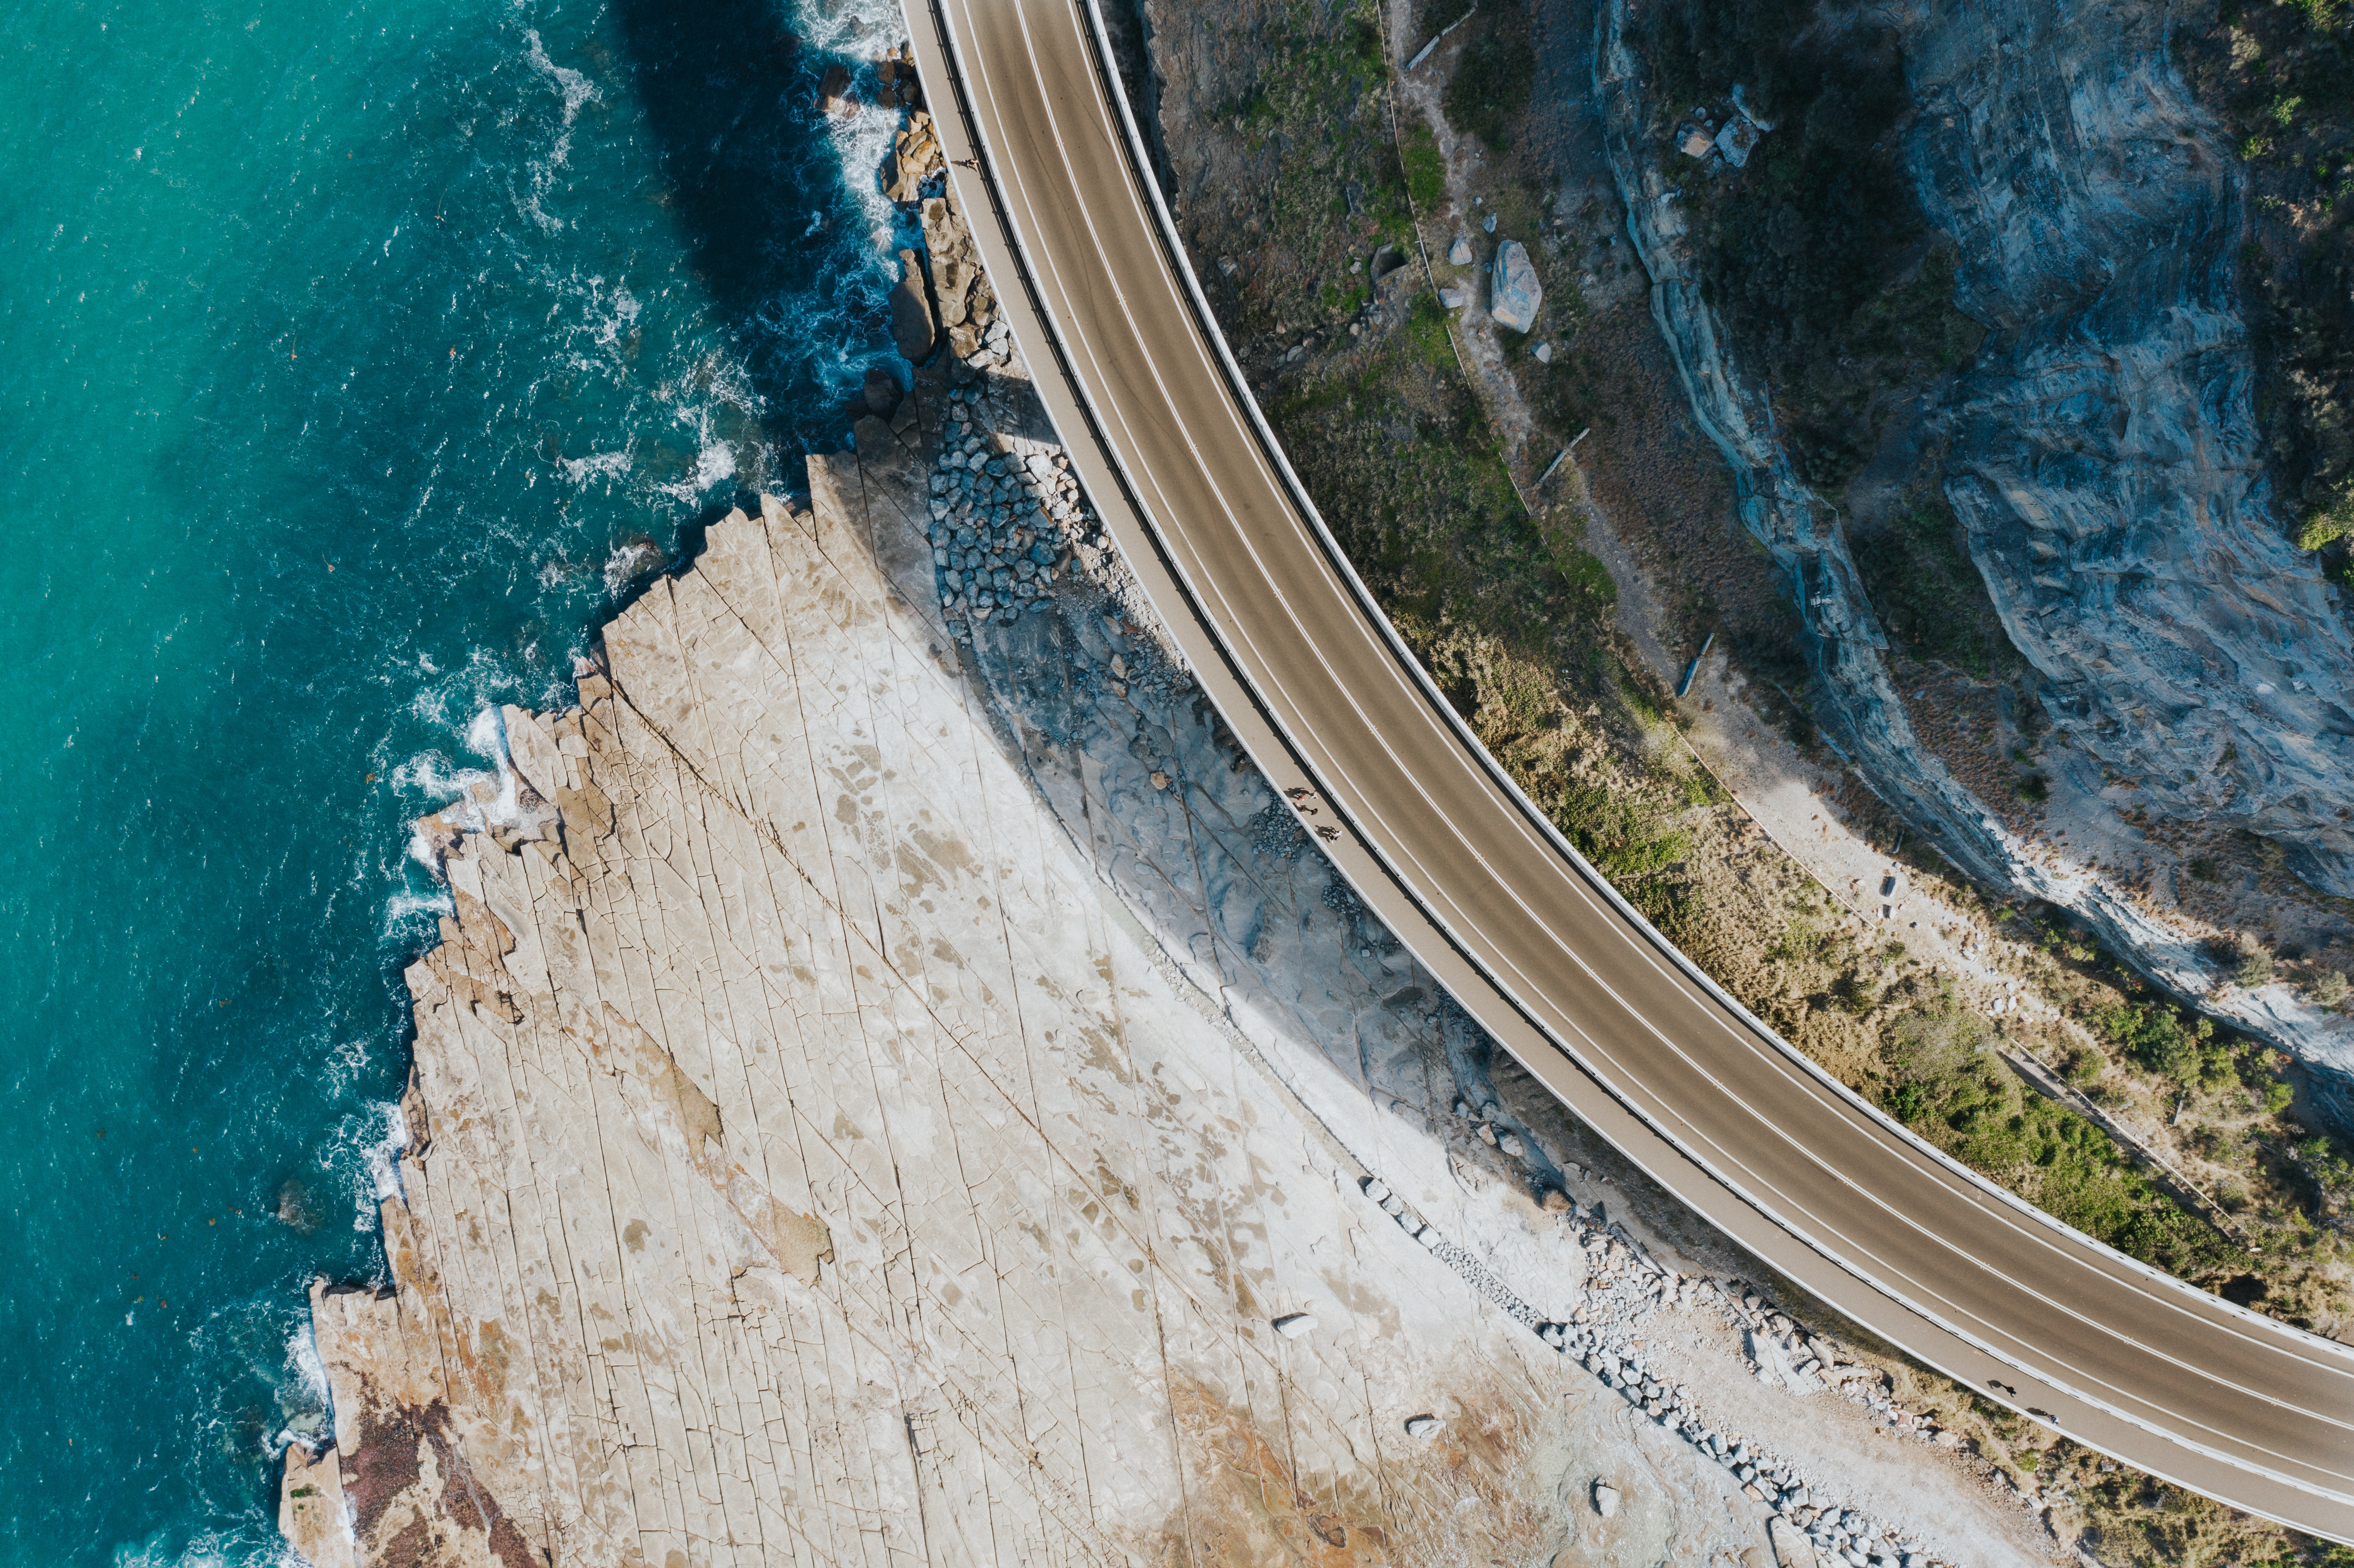 aerial view of road beside body of water